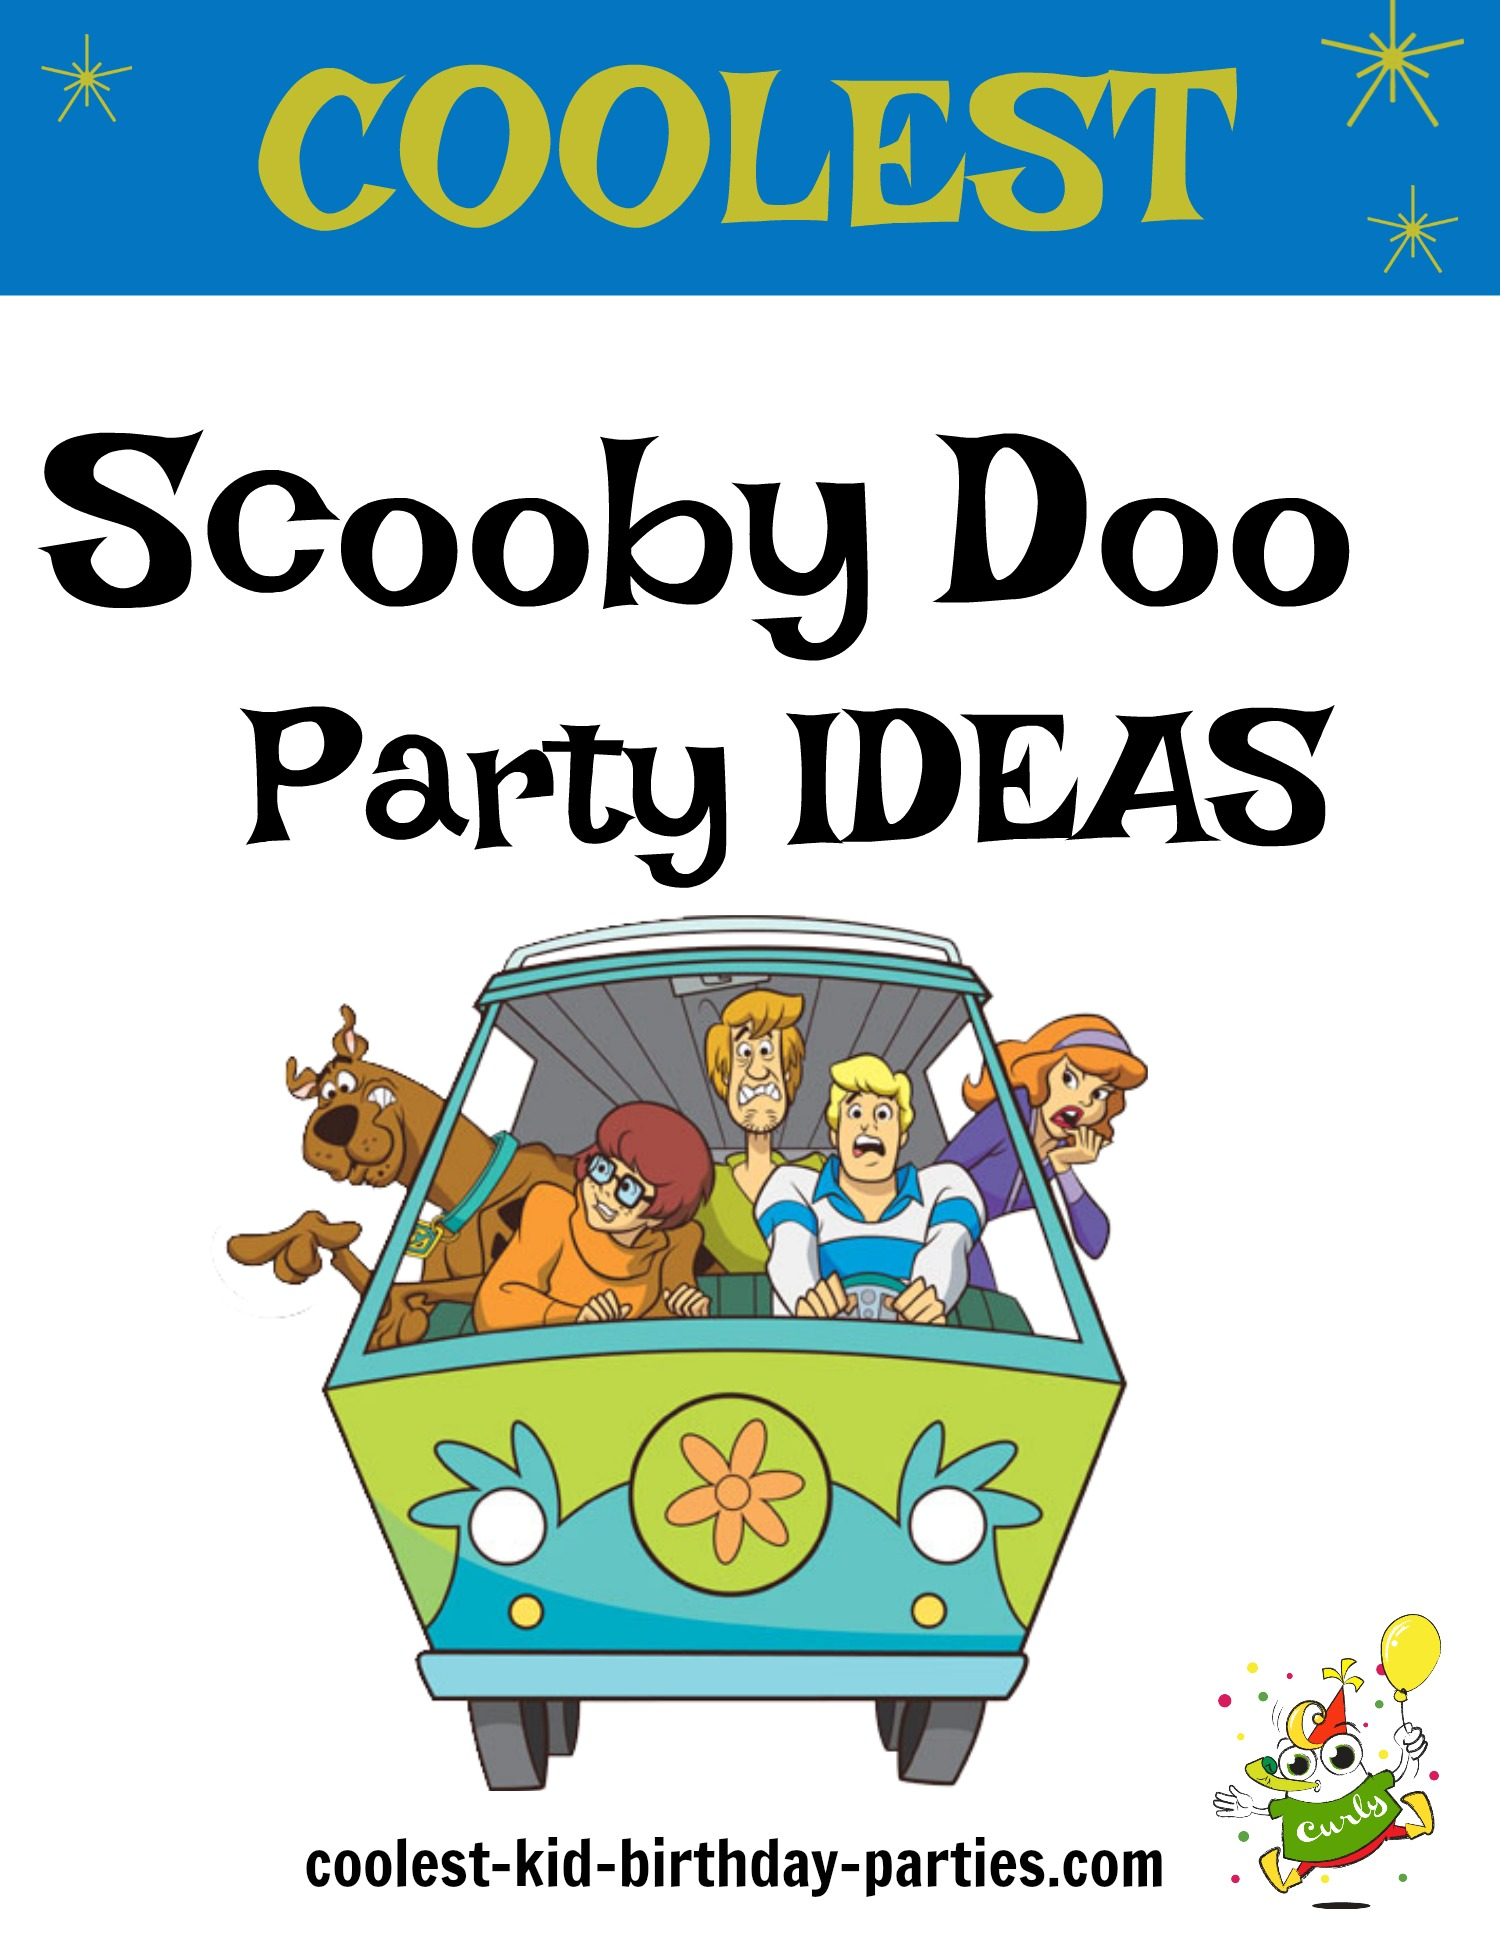 57accb79a Coolest Scooby Doo Birthday Party Ideas | Coolest Kid Birthday Parties